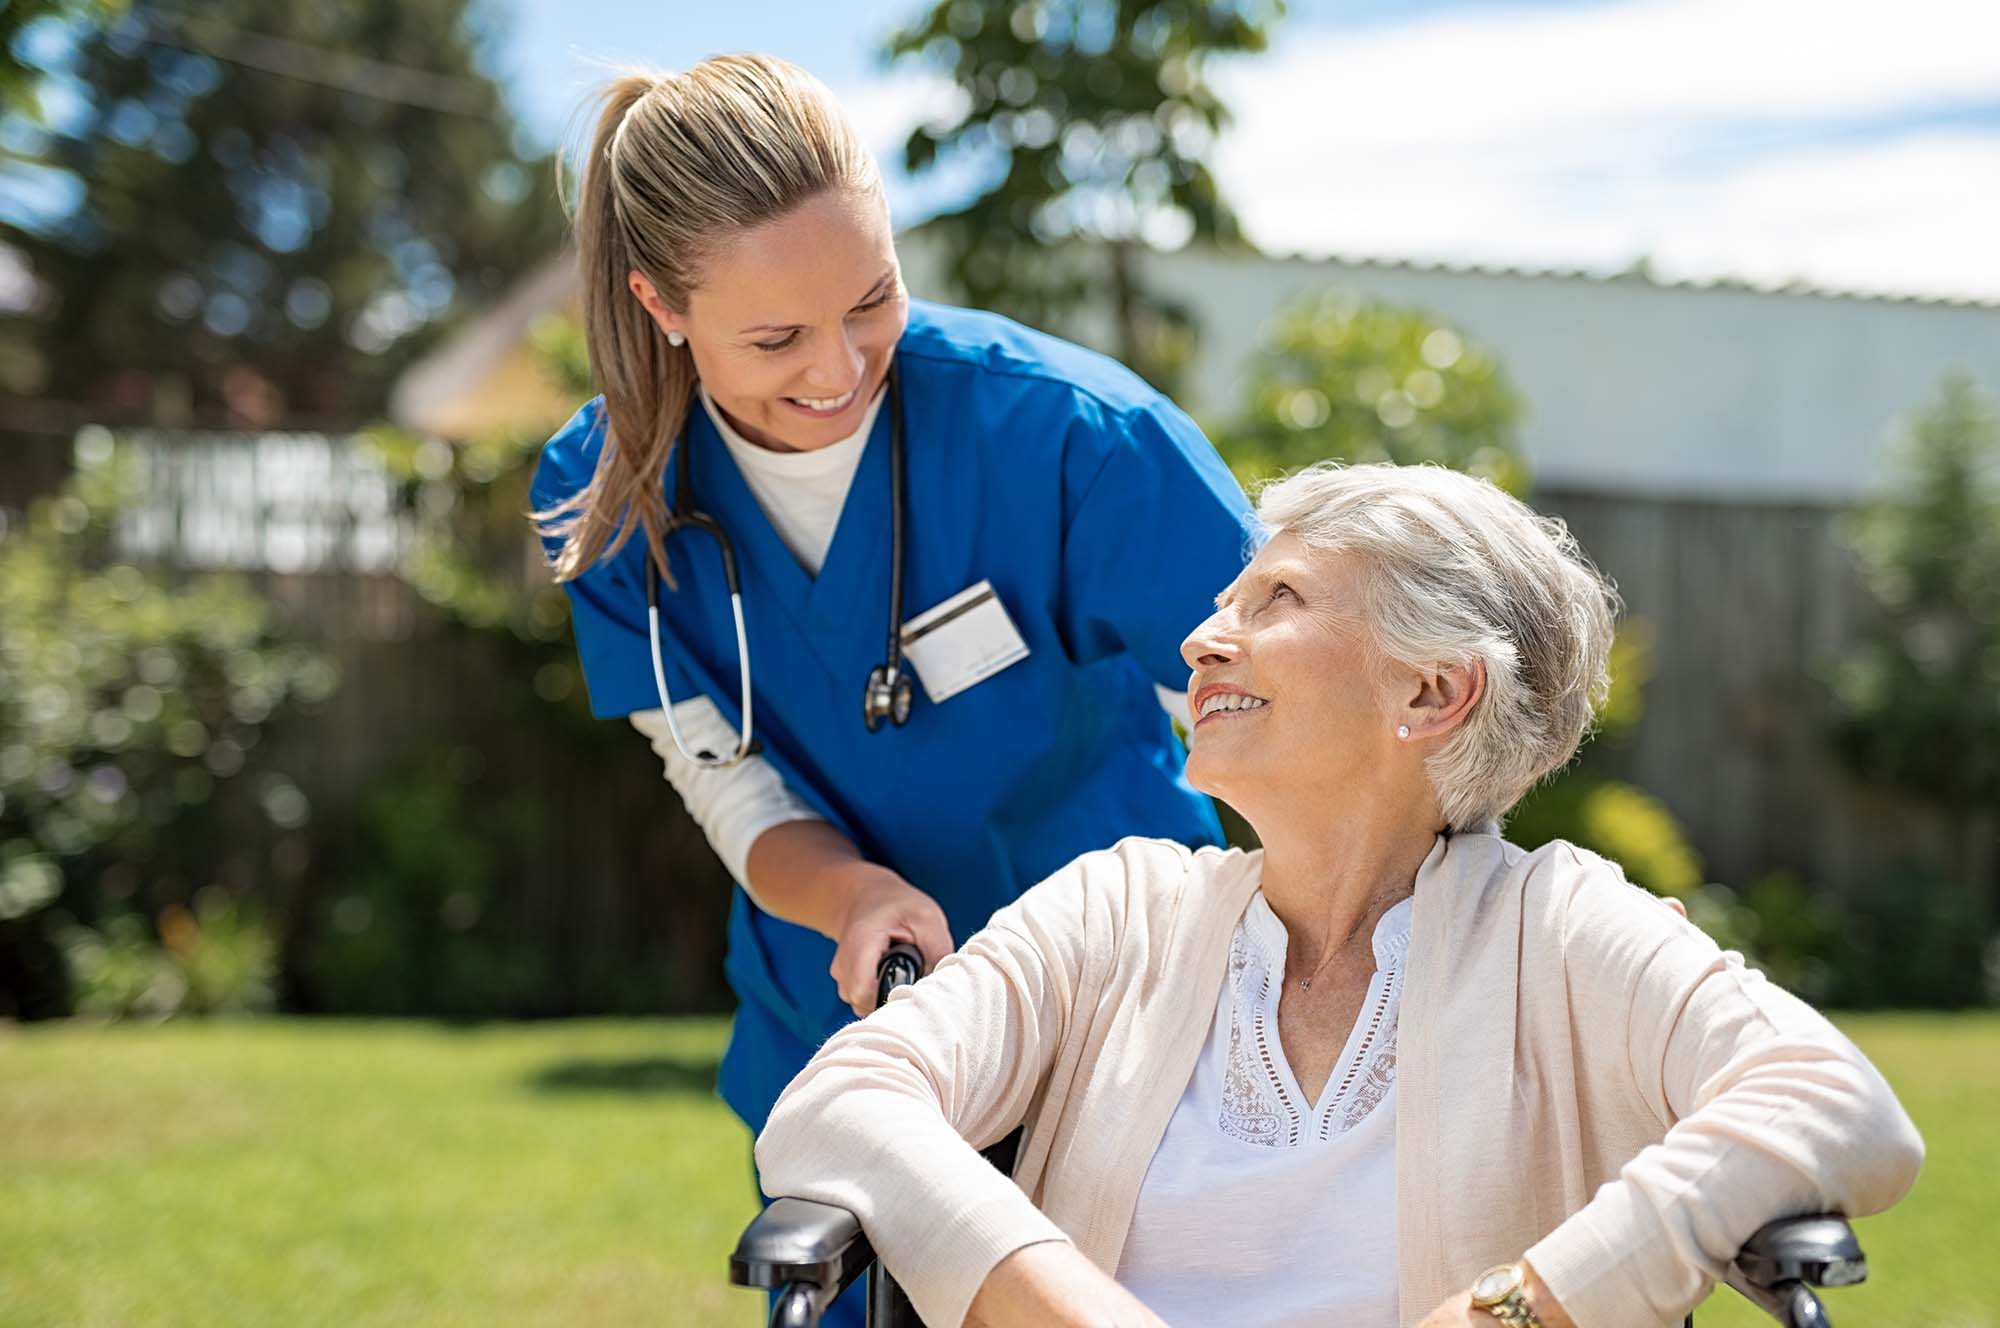 skilled nurse with patient for health services